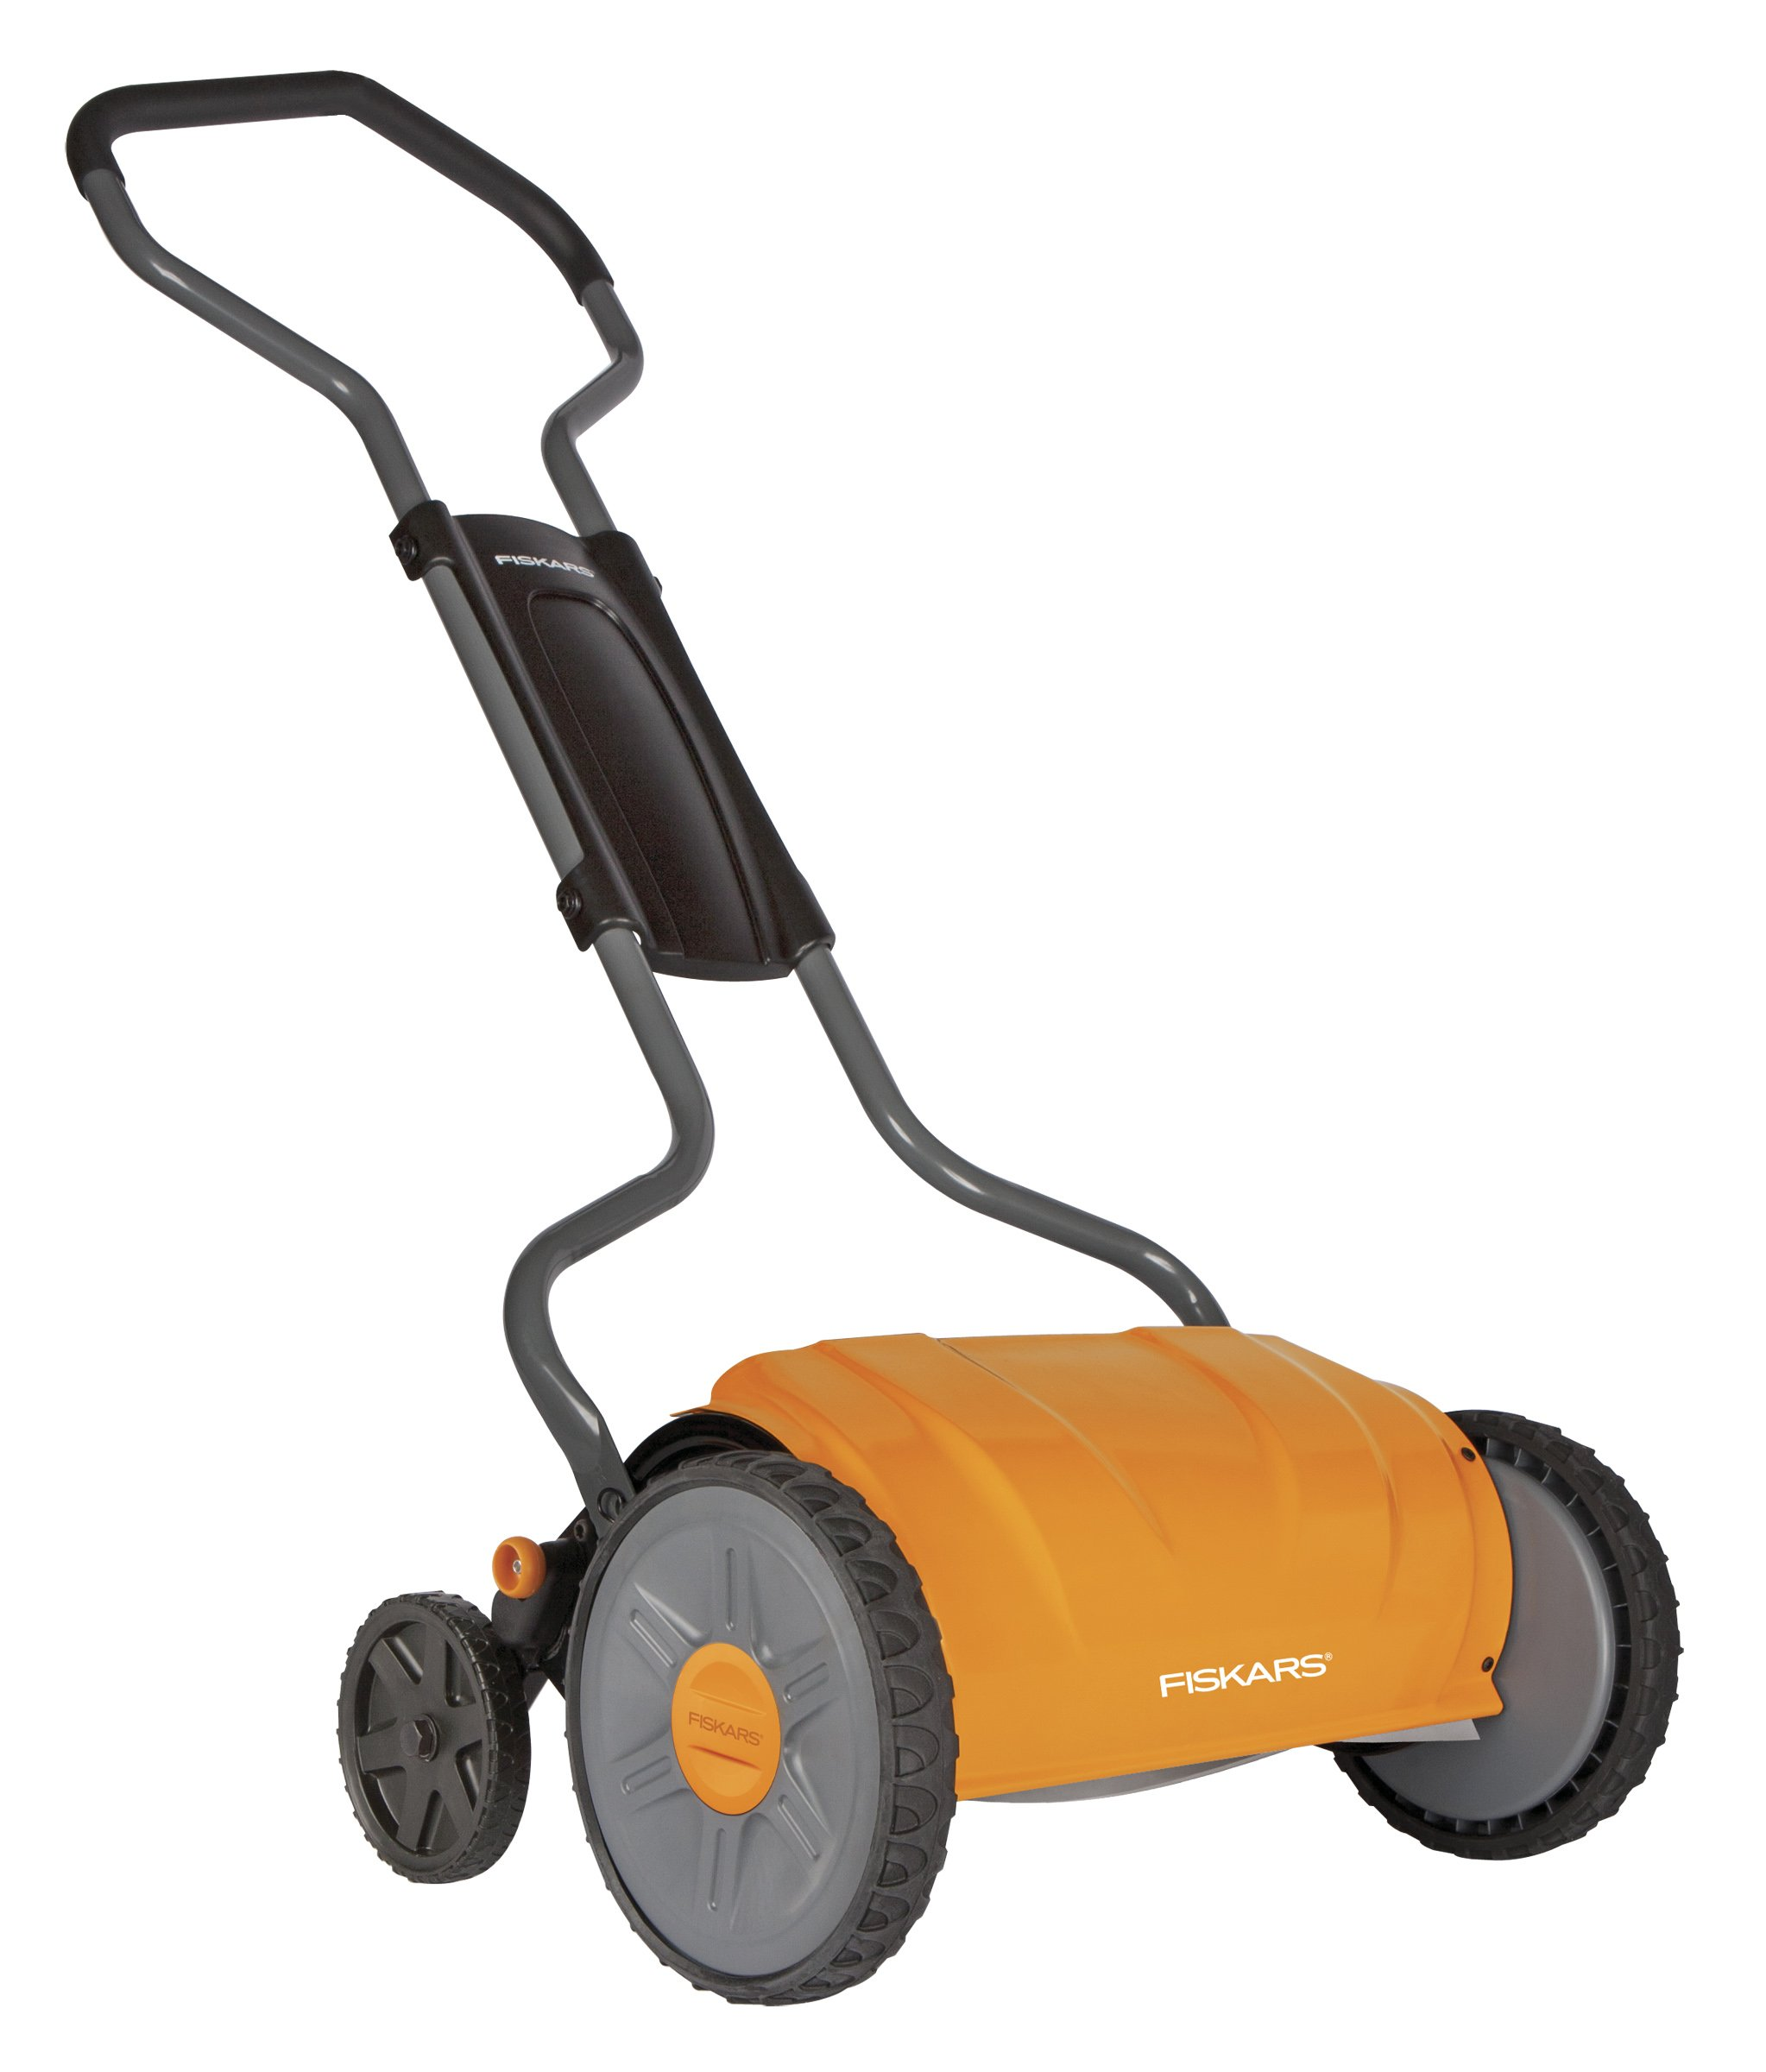 Fiskars 17 inch Staysharp Push Reel Lawn Mower (6208) (Pack of 2) 1 The smart design of our eco-friendly reel mower offers a cleaner cut without the hassles of gasoline, oil, battery charging, electrical cords or loud engine noise A combination of advanced technologies make the StaySharp Reel Mower 30 percent easier to push than other reel mowers Patent-pending InertiaDrive Reel delivers 50 percent more cutting power to blast through twigs, weeds and tough spots that would jam other reel mowers